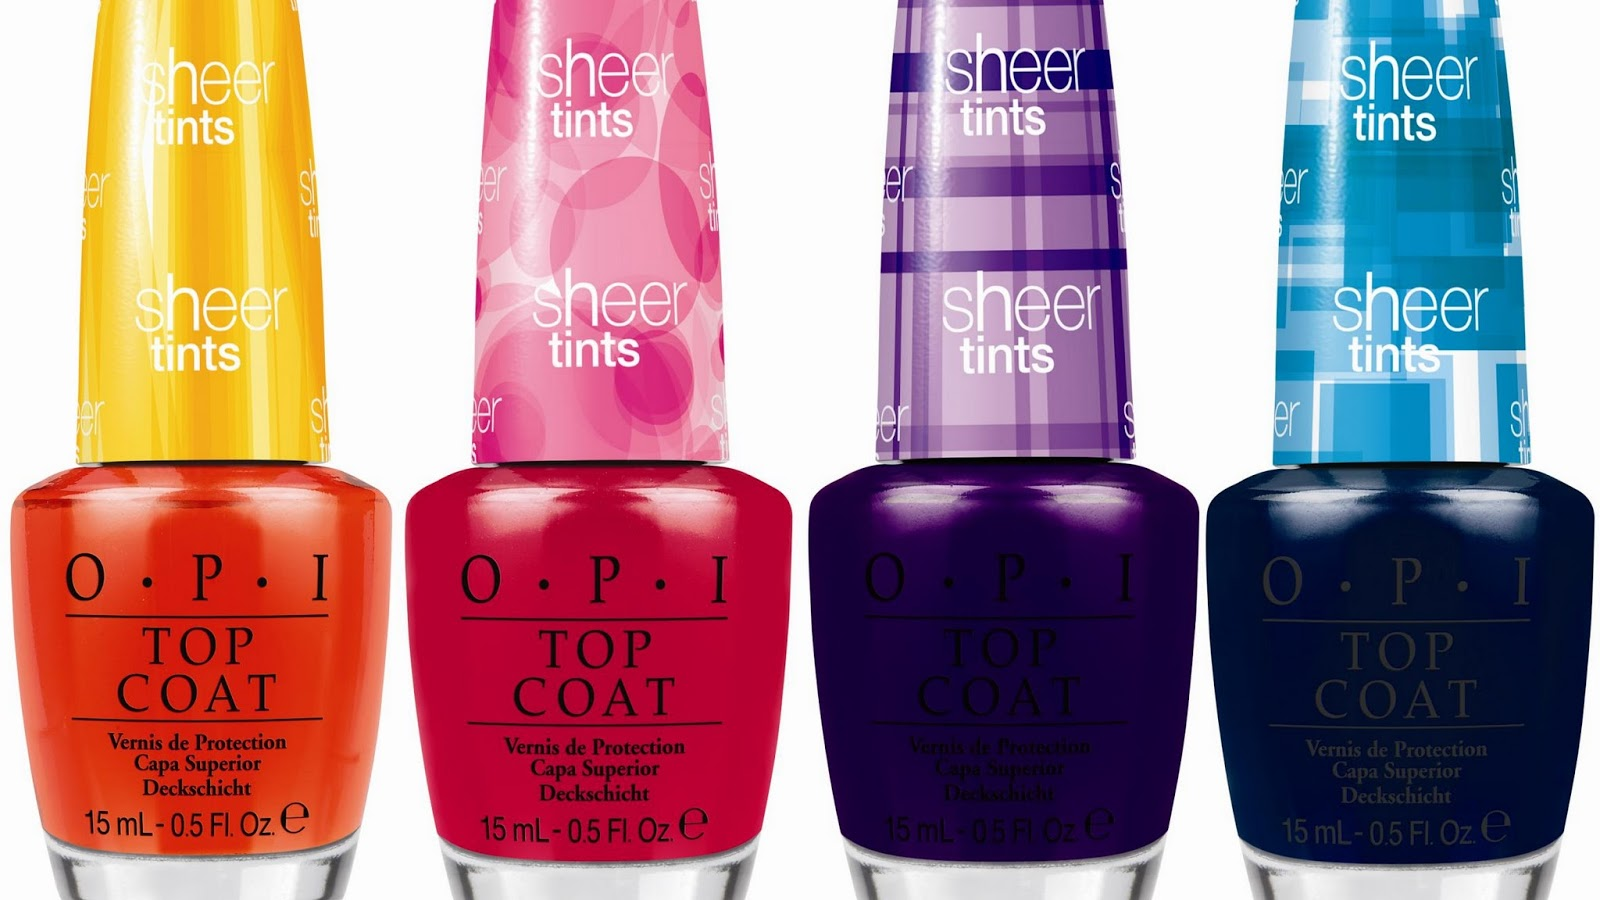 Press Release Opi Sheer Tint Top Coats Adventures In Acetone